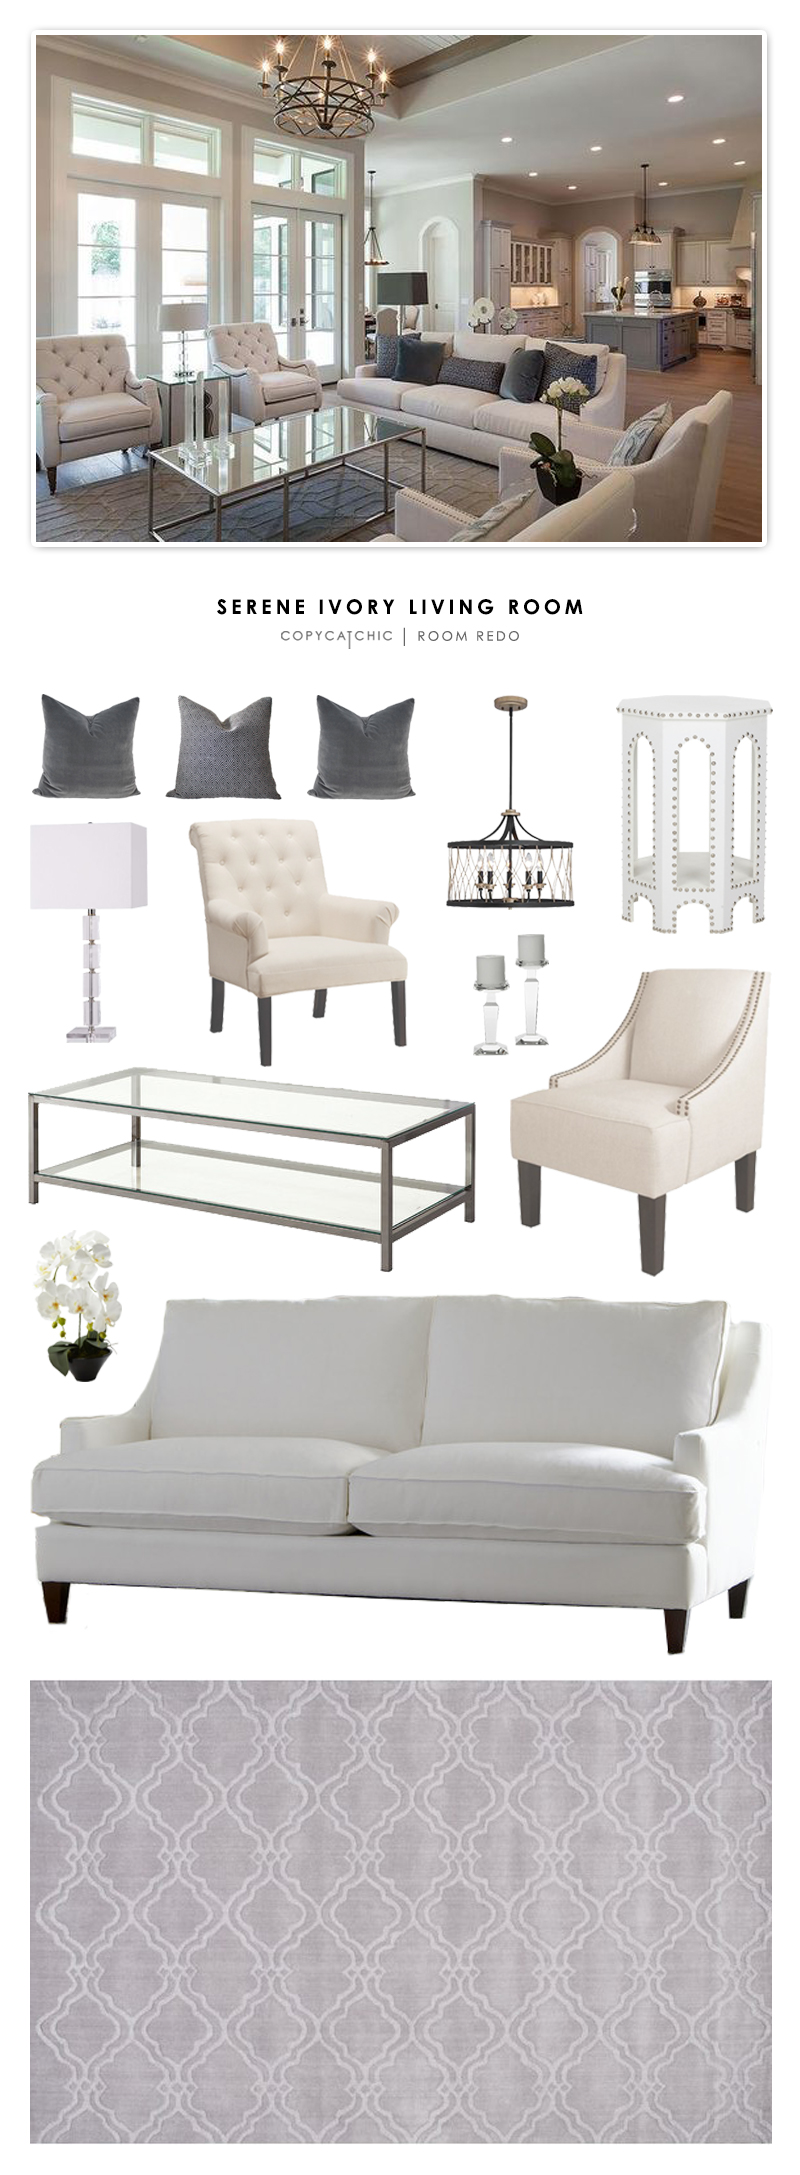 A Serene Ivory Living Room Designed By Frankel Building Group Recreated For  Less By Copy Cat